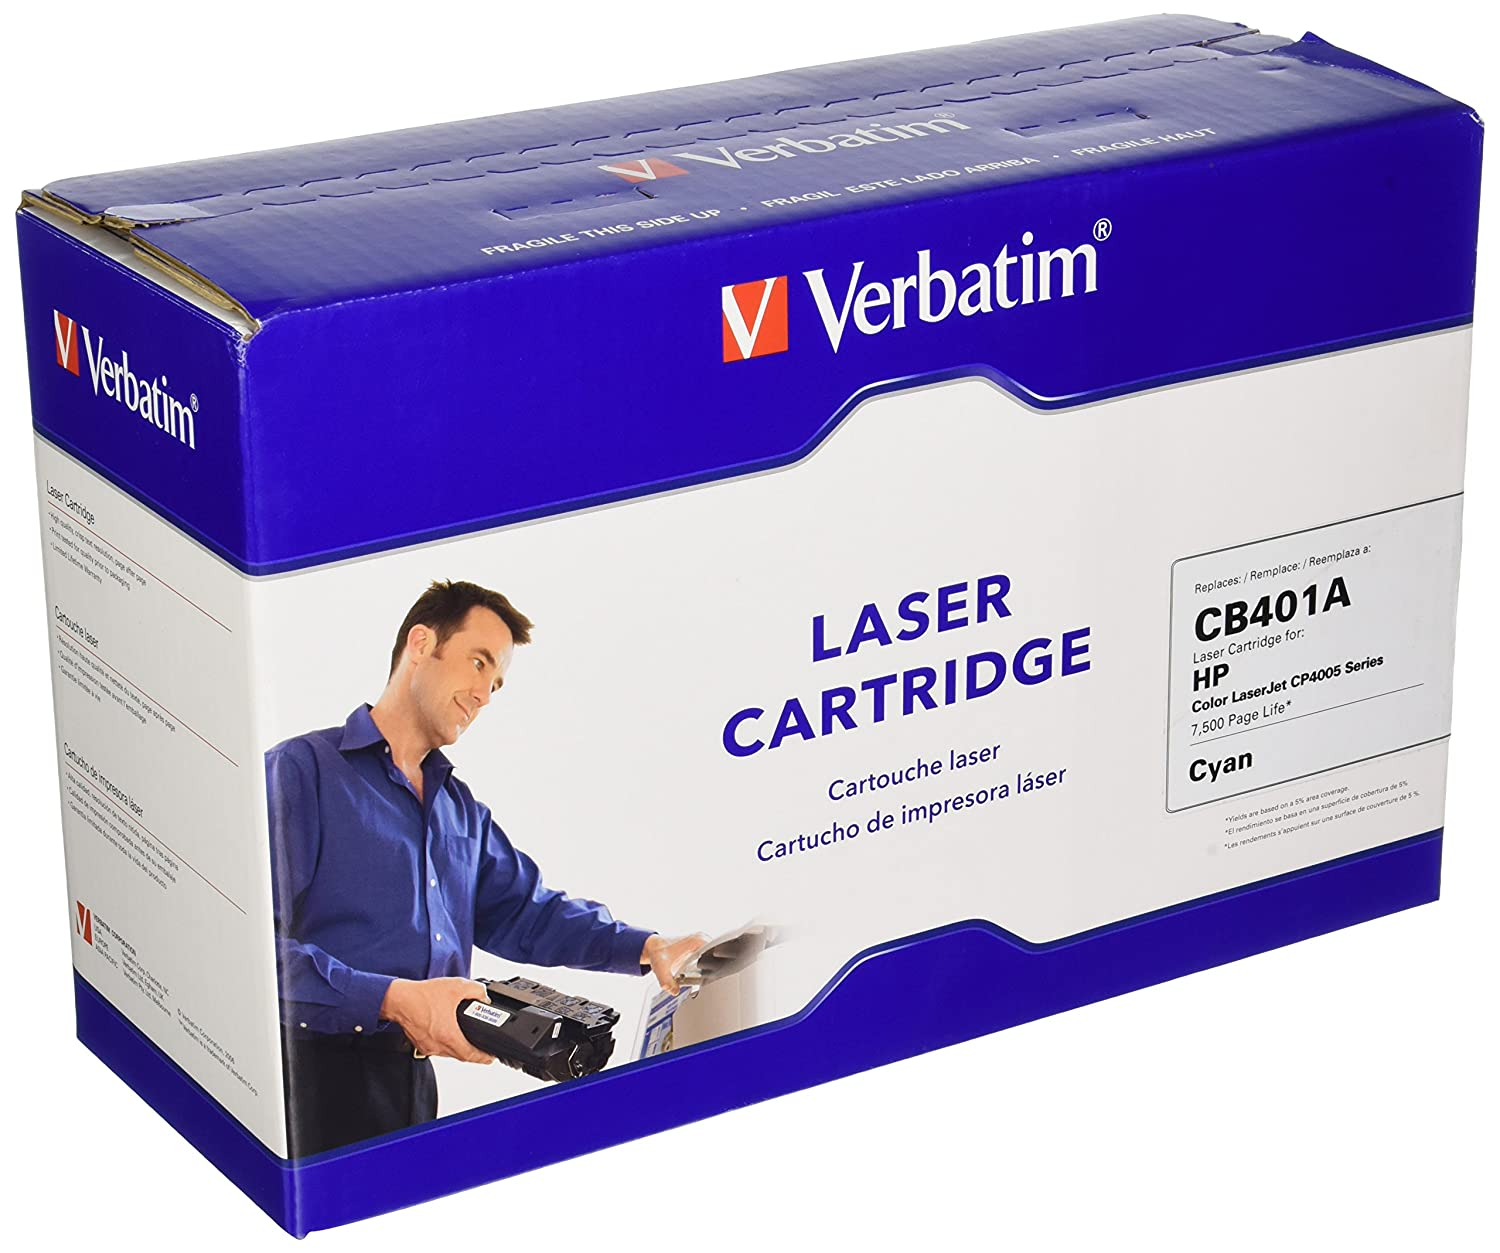 Verbatim Remanufactured Toner Cartridge Replacement for HP CB401A (Cyan)